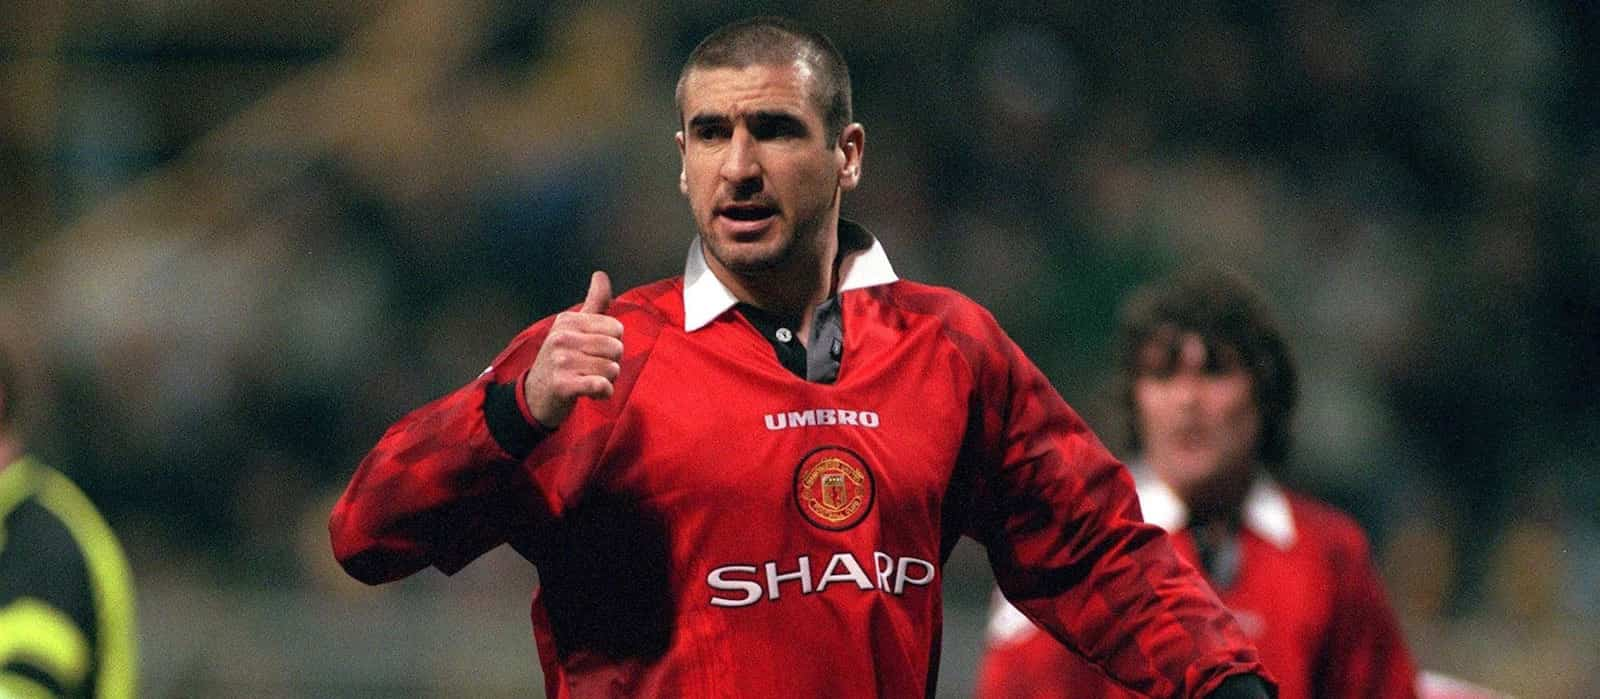 Eric Cantona believes Manchester United will return to their best soon